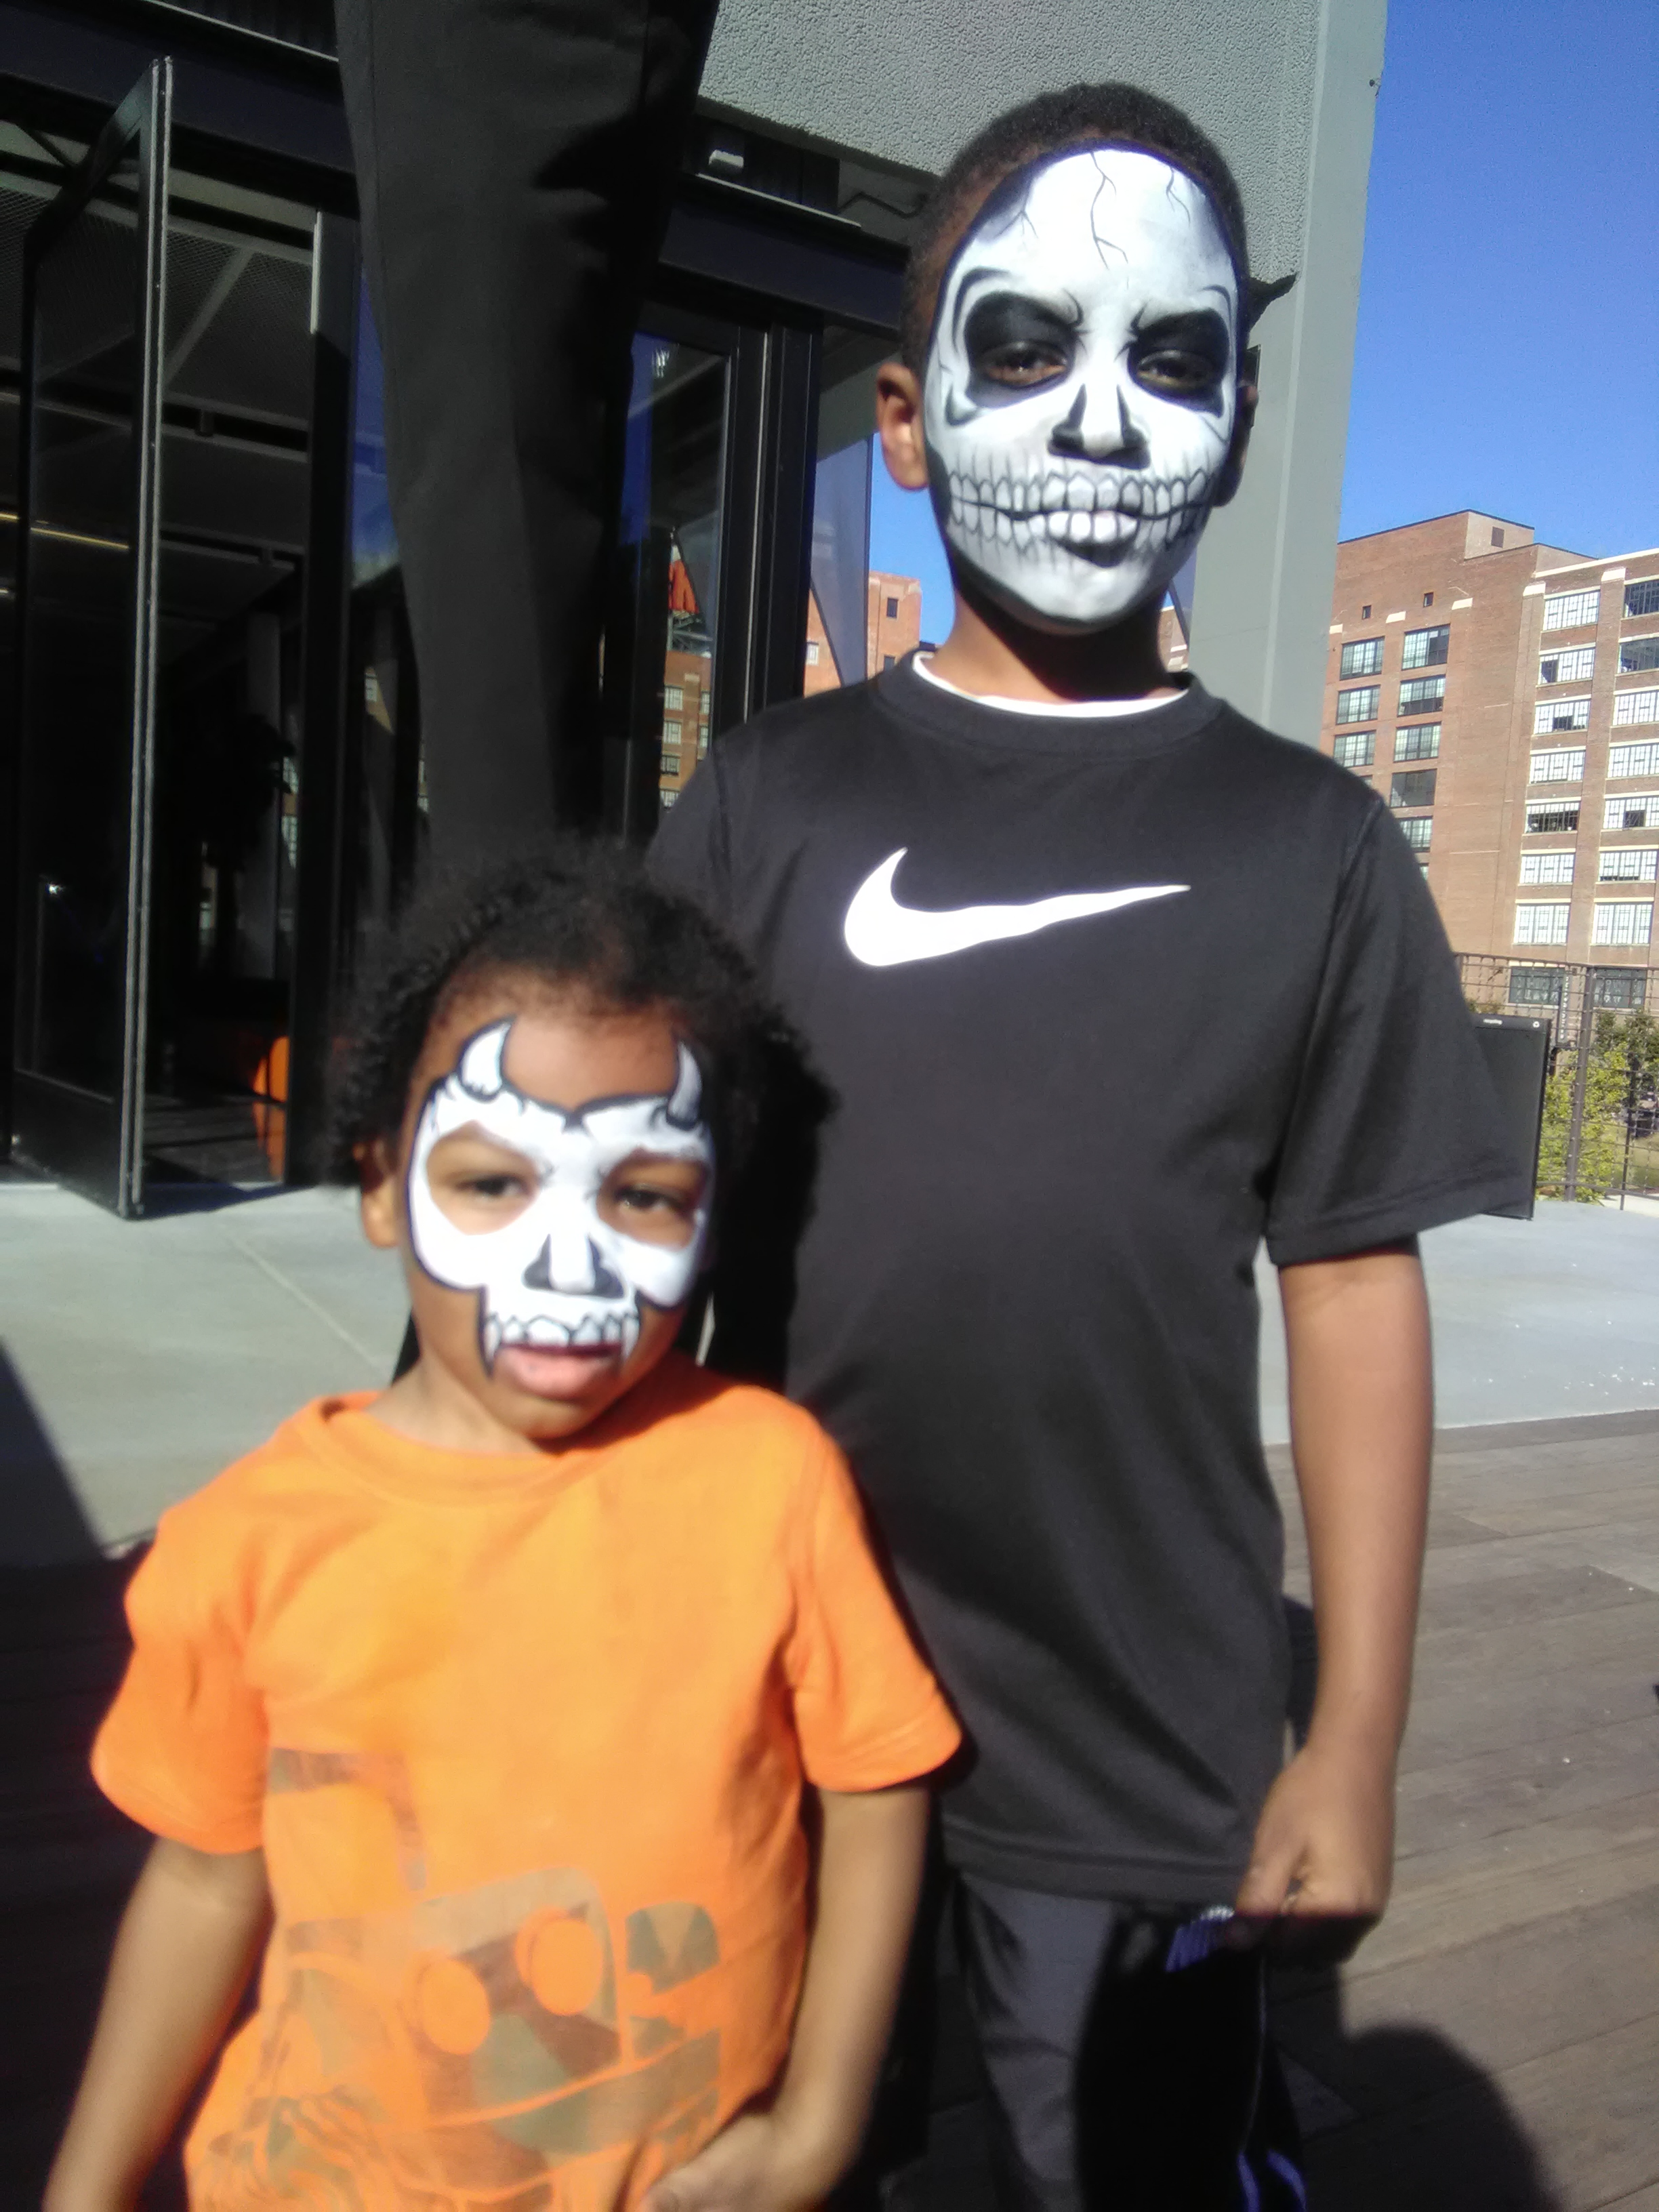 Google Fiber Event- Skulls face painting